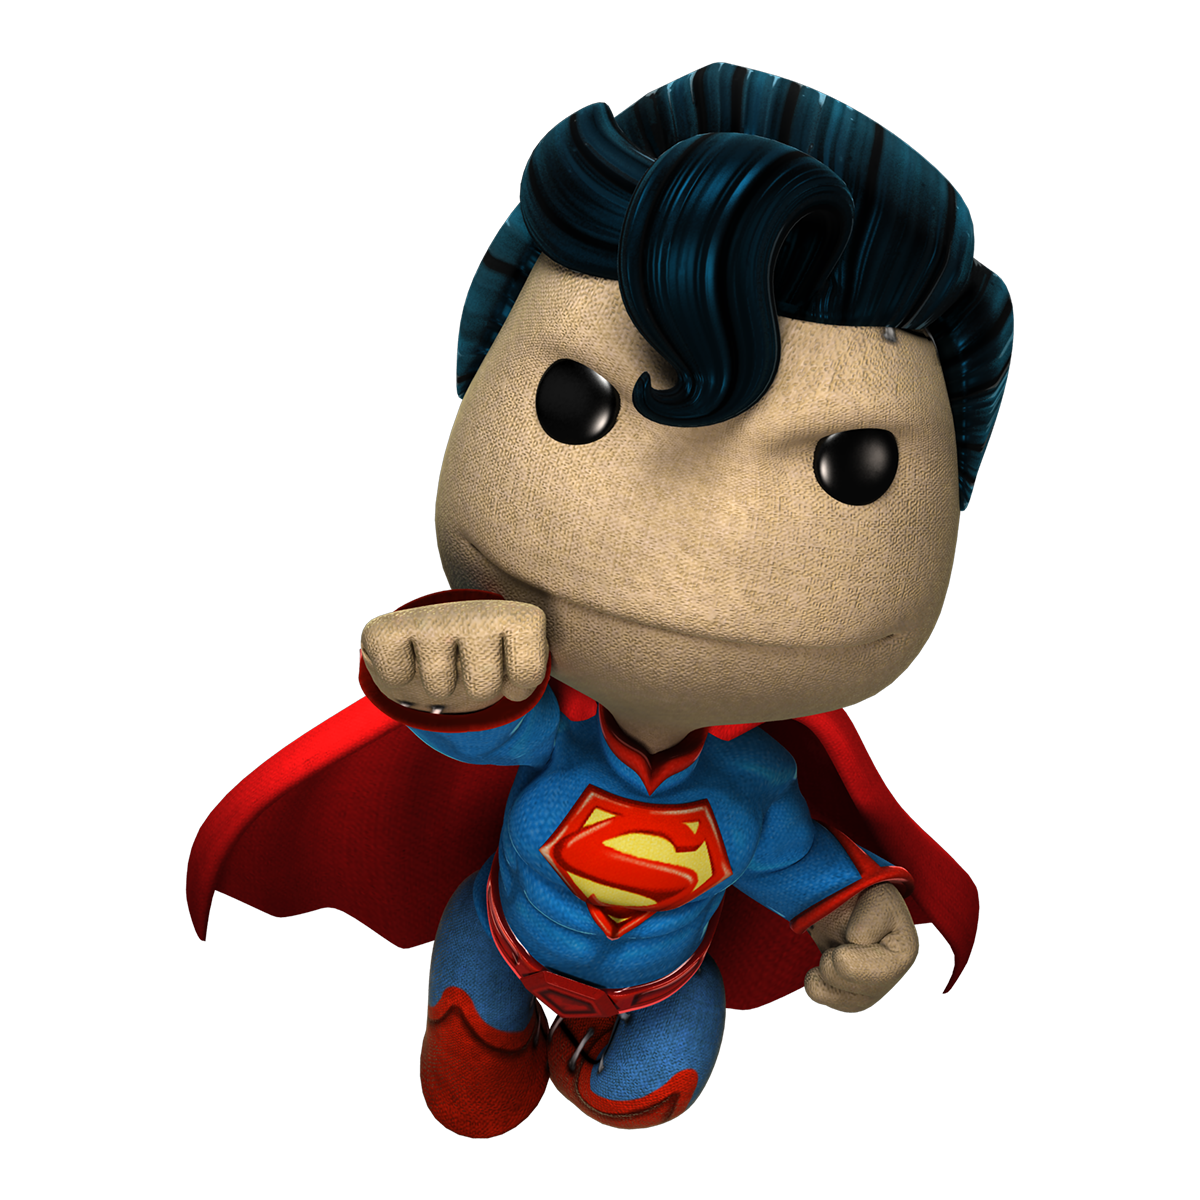 Detective clipart truth. Superman littlebigplanet quantum of